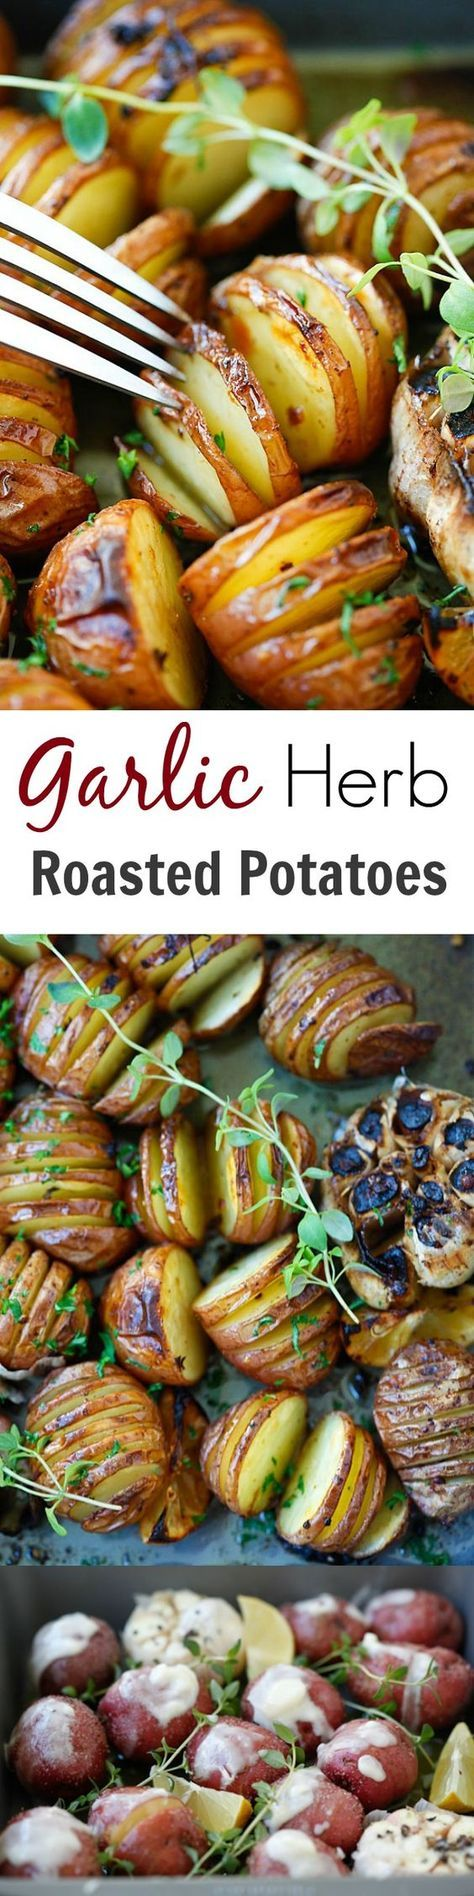 Garlic Herb Roasted Potatoes – the easiest and delicious roasted potatoes with olive oil, butter, garlic, herb and lemon!!   rasamalaysia.com: